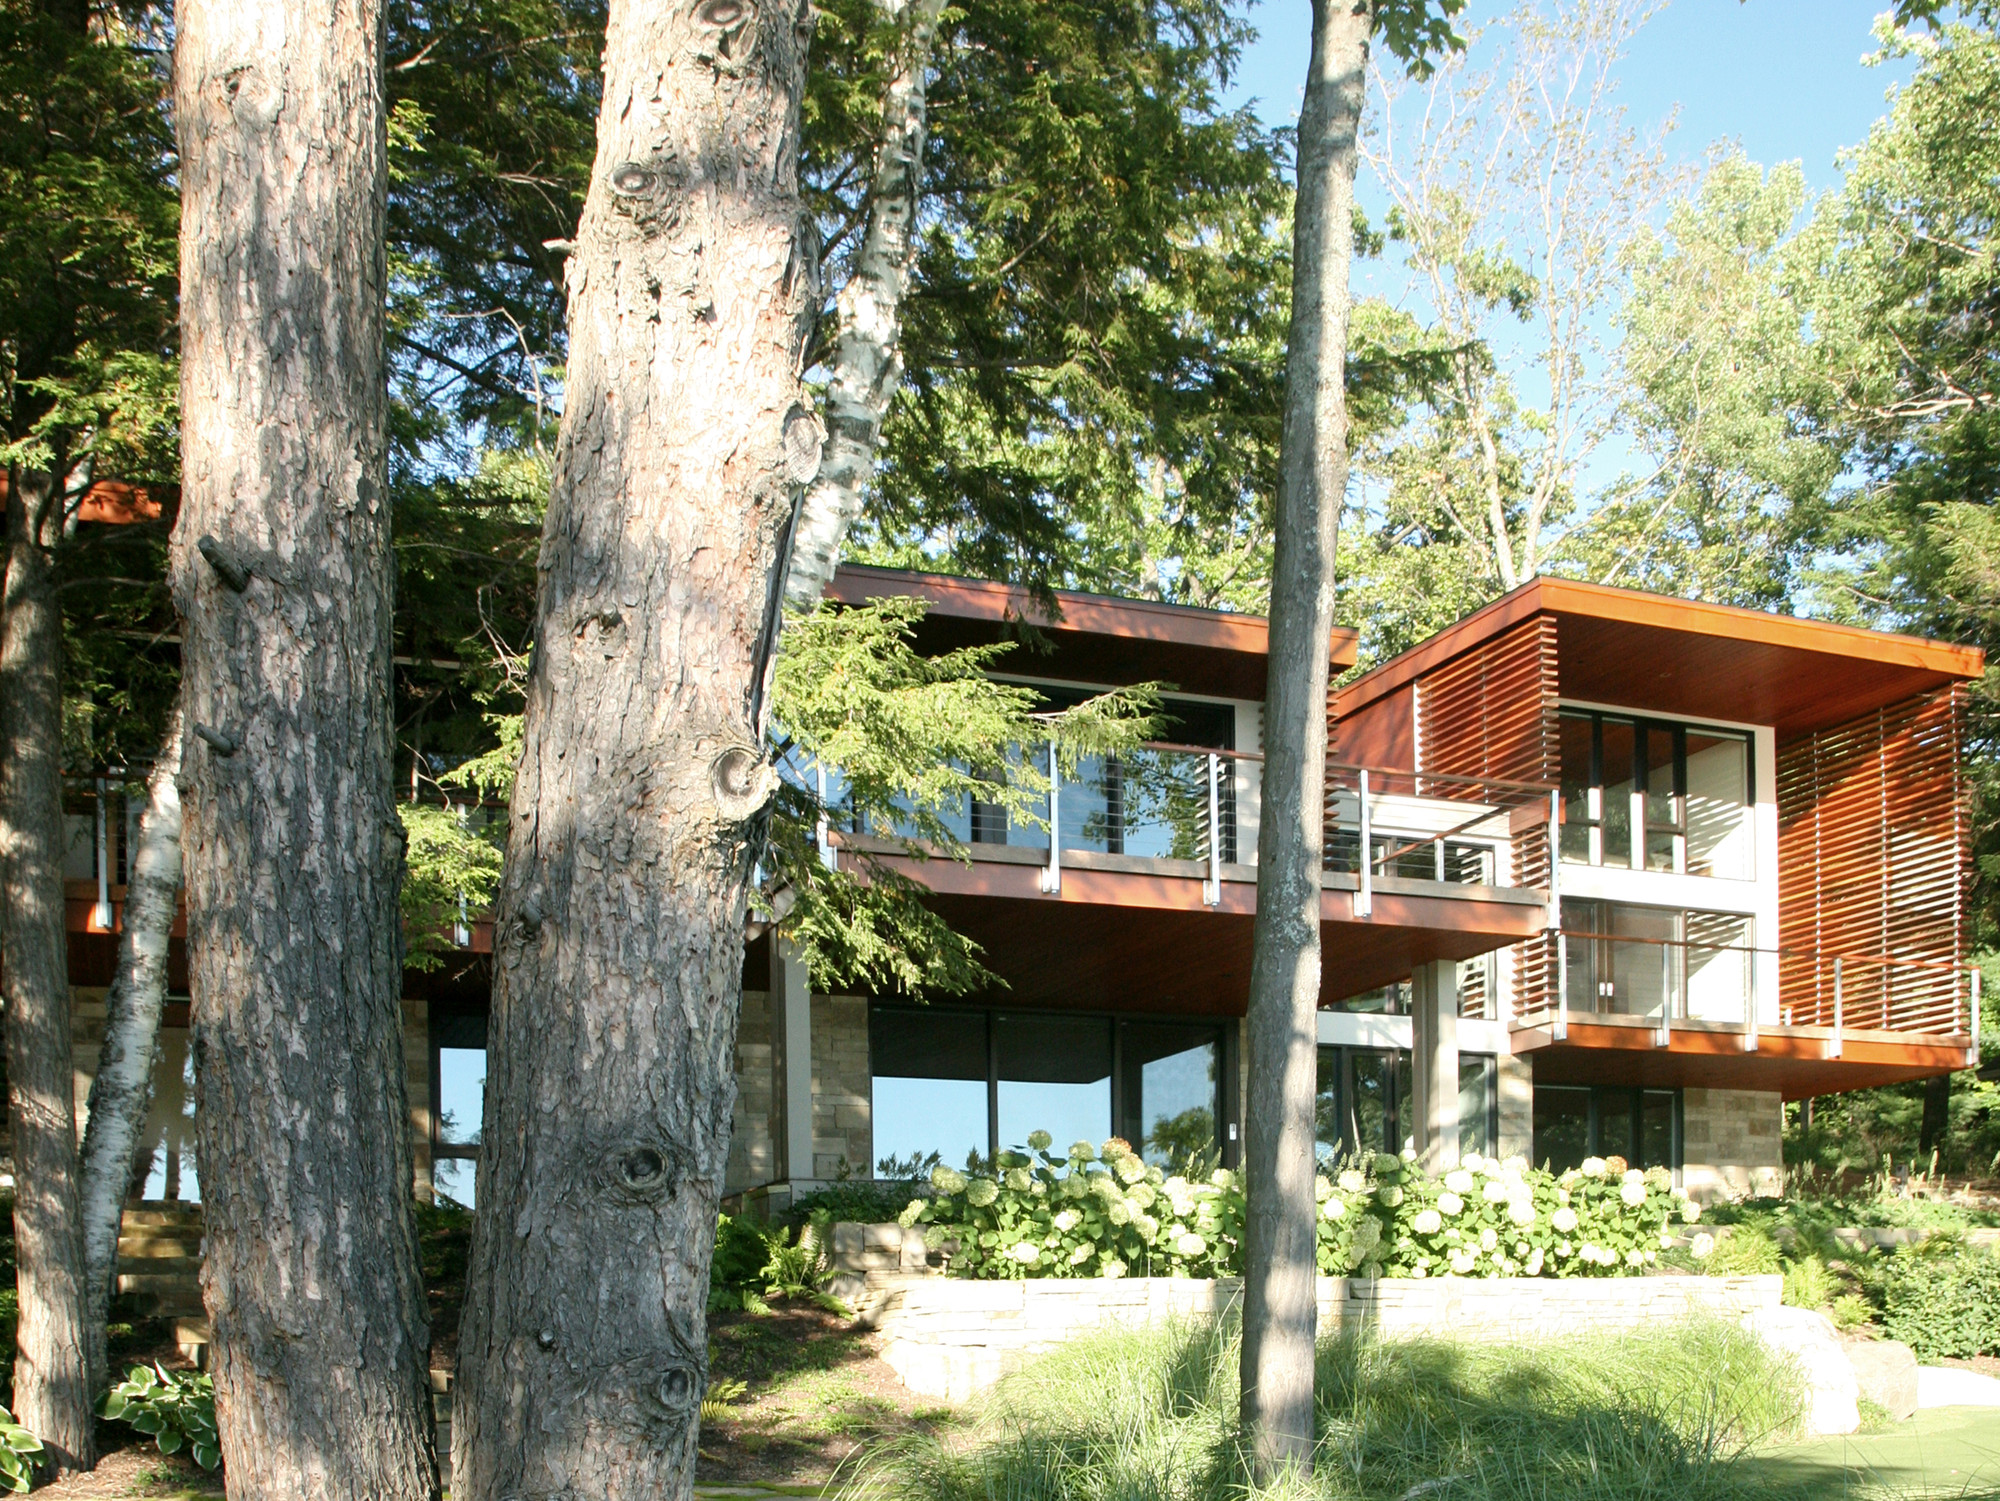 Walloon Lake House / DUDZIK Studios, Courtesy of DUDZIK Studios